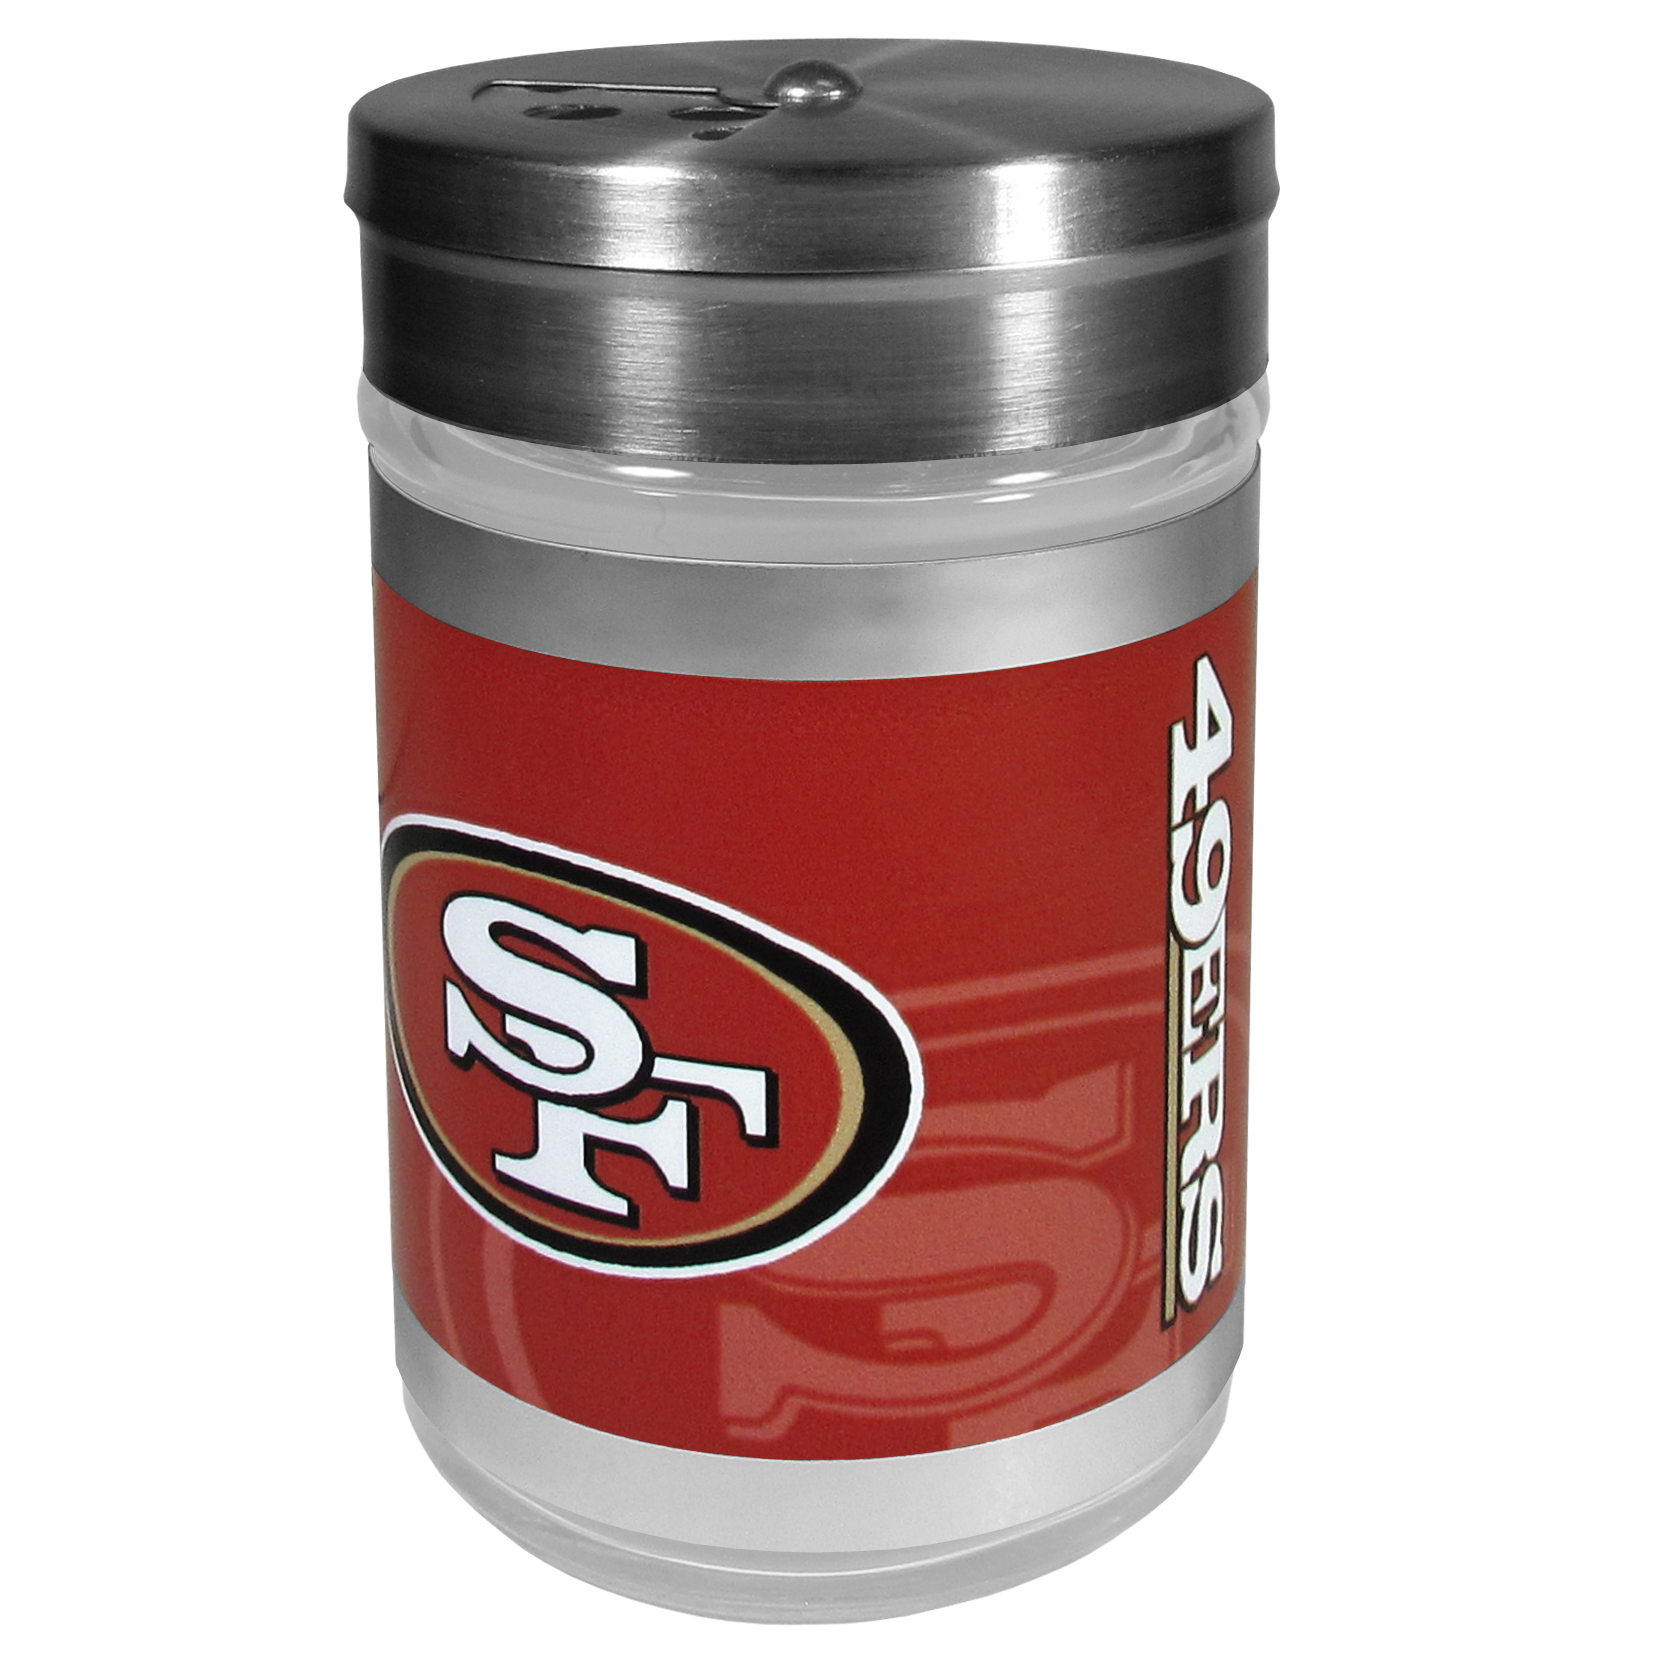 San Francisco 49ers Tailgater Season Shakers - Spice it up with our San Francisco 49ers tailgater season shakers! This compact shaker is 2 inch tall with a twist top that closes off the holes at the top making it perfect for travel preventing those messy spills. The shaker has wide holes perfect for keeping your pepper seeds or cheese toppings. The bright team graphics will make you the envy of the other fans while you are grilling up your tailgating goodies.